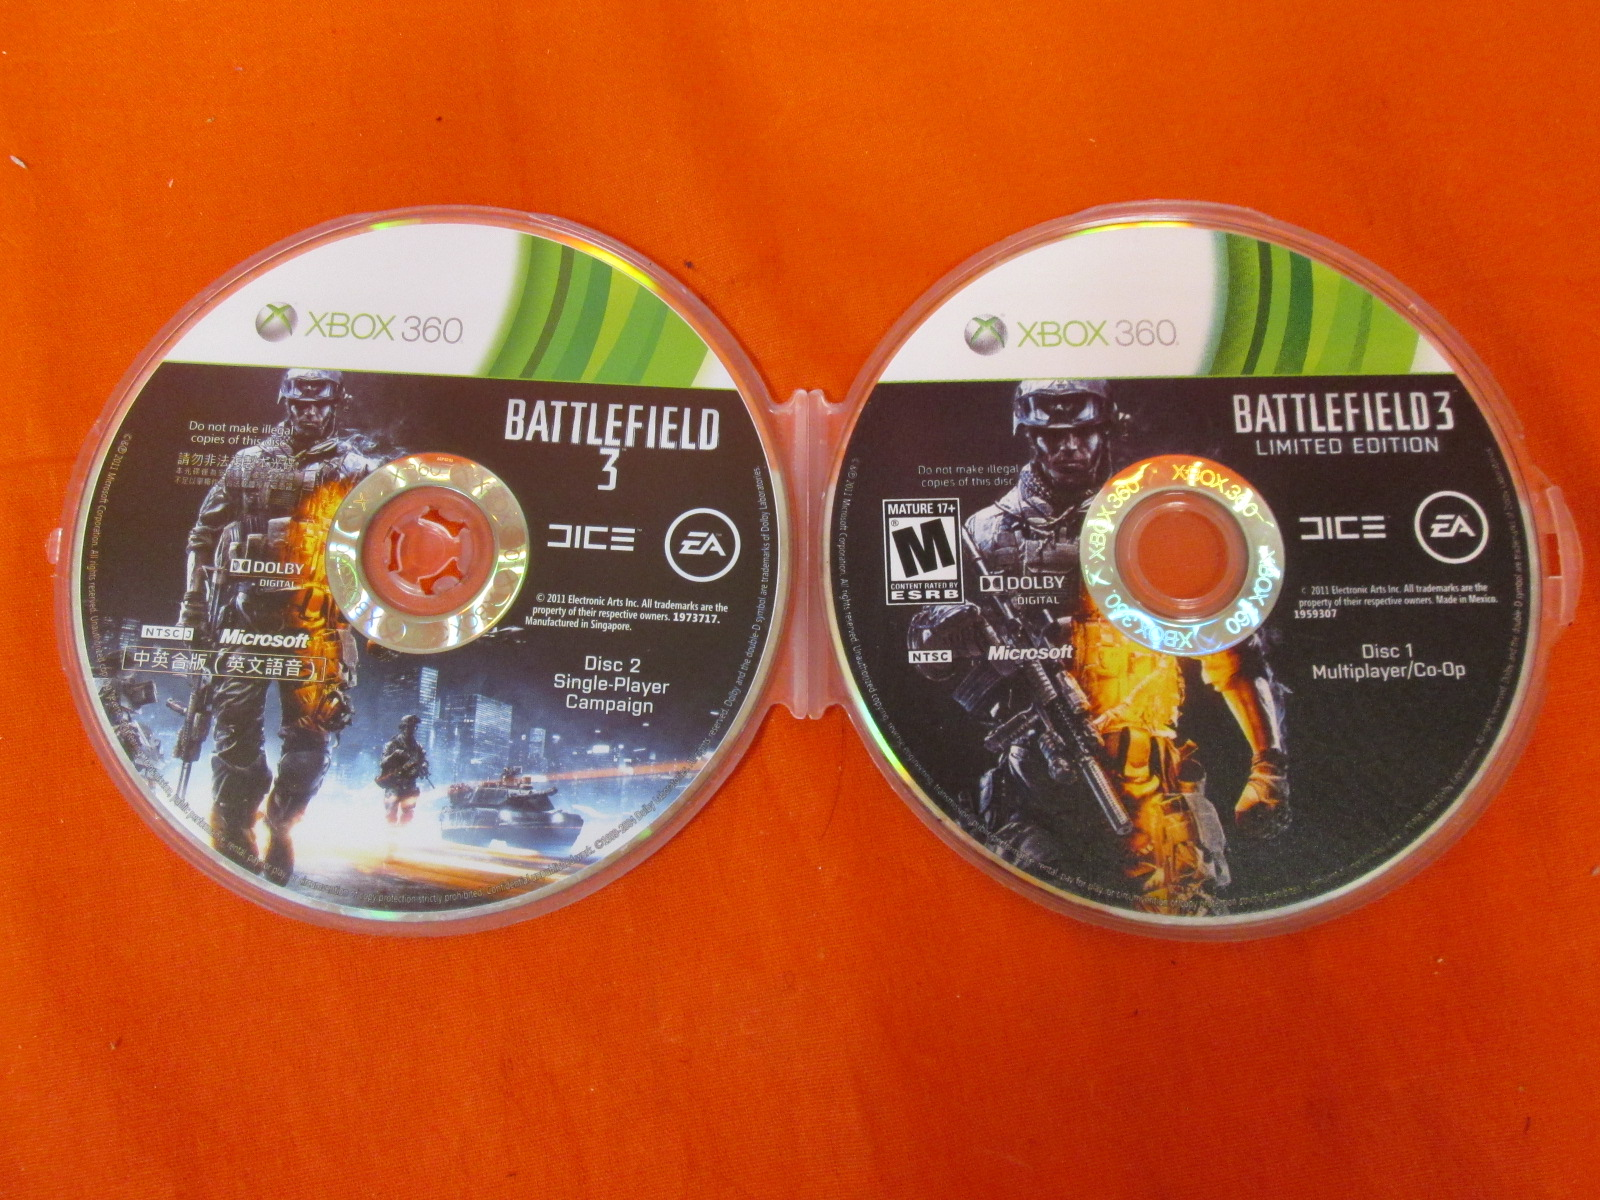 Battlefield 3 Limited Edition For Xbox 360 Edition Japanese